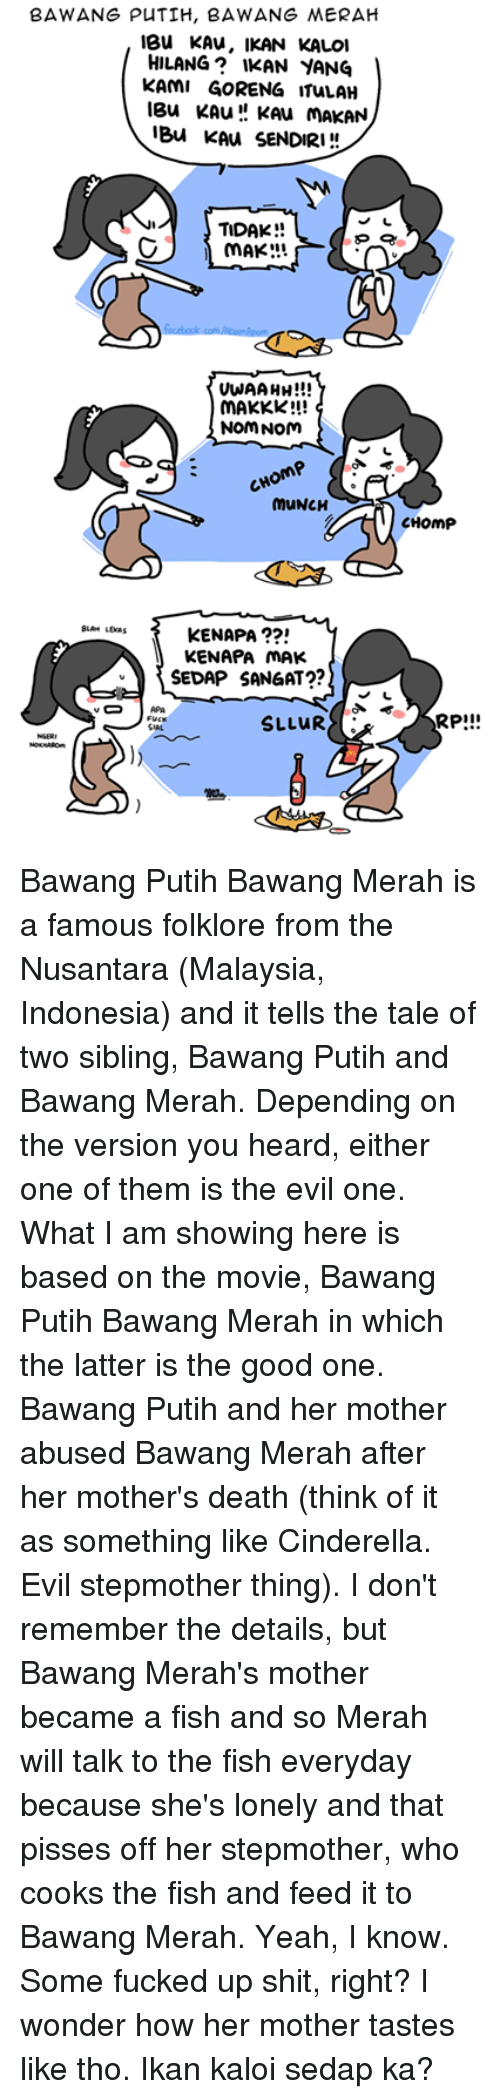 nom noms: BAWANG PUTIH, BAWANG MERAH  IBU KAU, IKAN KALOI  HILANG KAN YANG  KAMI GORENG ITULAH  leu KAu KAu MAKAN  iBlu KAU SENDIRI  TIDAK  MAKE:AL  UWAAHH!!!  MAKKK!!!  NOM NOM  MUNCH  KENAPA  KENAPA MAK.  SEDAP SANGAT??  SLLUR  SAL,  CHOmp  RPI!! Bawang Putih Bawang Merah is a famous folklore from the Nusantara (Malaysia, Indonesia) and it tells the tale of two sibling, Bawang Putih and Bawang Merah. Depending on the version you heard, either one of them is the evil one. What I am showing here is based on the movie, Bawang Putih Bawang Merah in which the latter is the good one.   Bawang Putih and her mother abused Bawang Merah after her mother's death (think of it as something like Cinderella. Evil stepmother thing). I don't remember the details, but Bawang Merah's mother became a fish and so Merah will talk to the fish everyday because she's lonely and that pisses off her stepmother, who cooks the fish and feed it to Bawang Merah. Yeah, I know. Some fucked up shit, right?   I wonder how her mother tastes like tho. Ikan kaloi sedap ka?